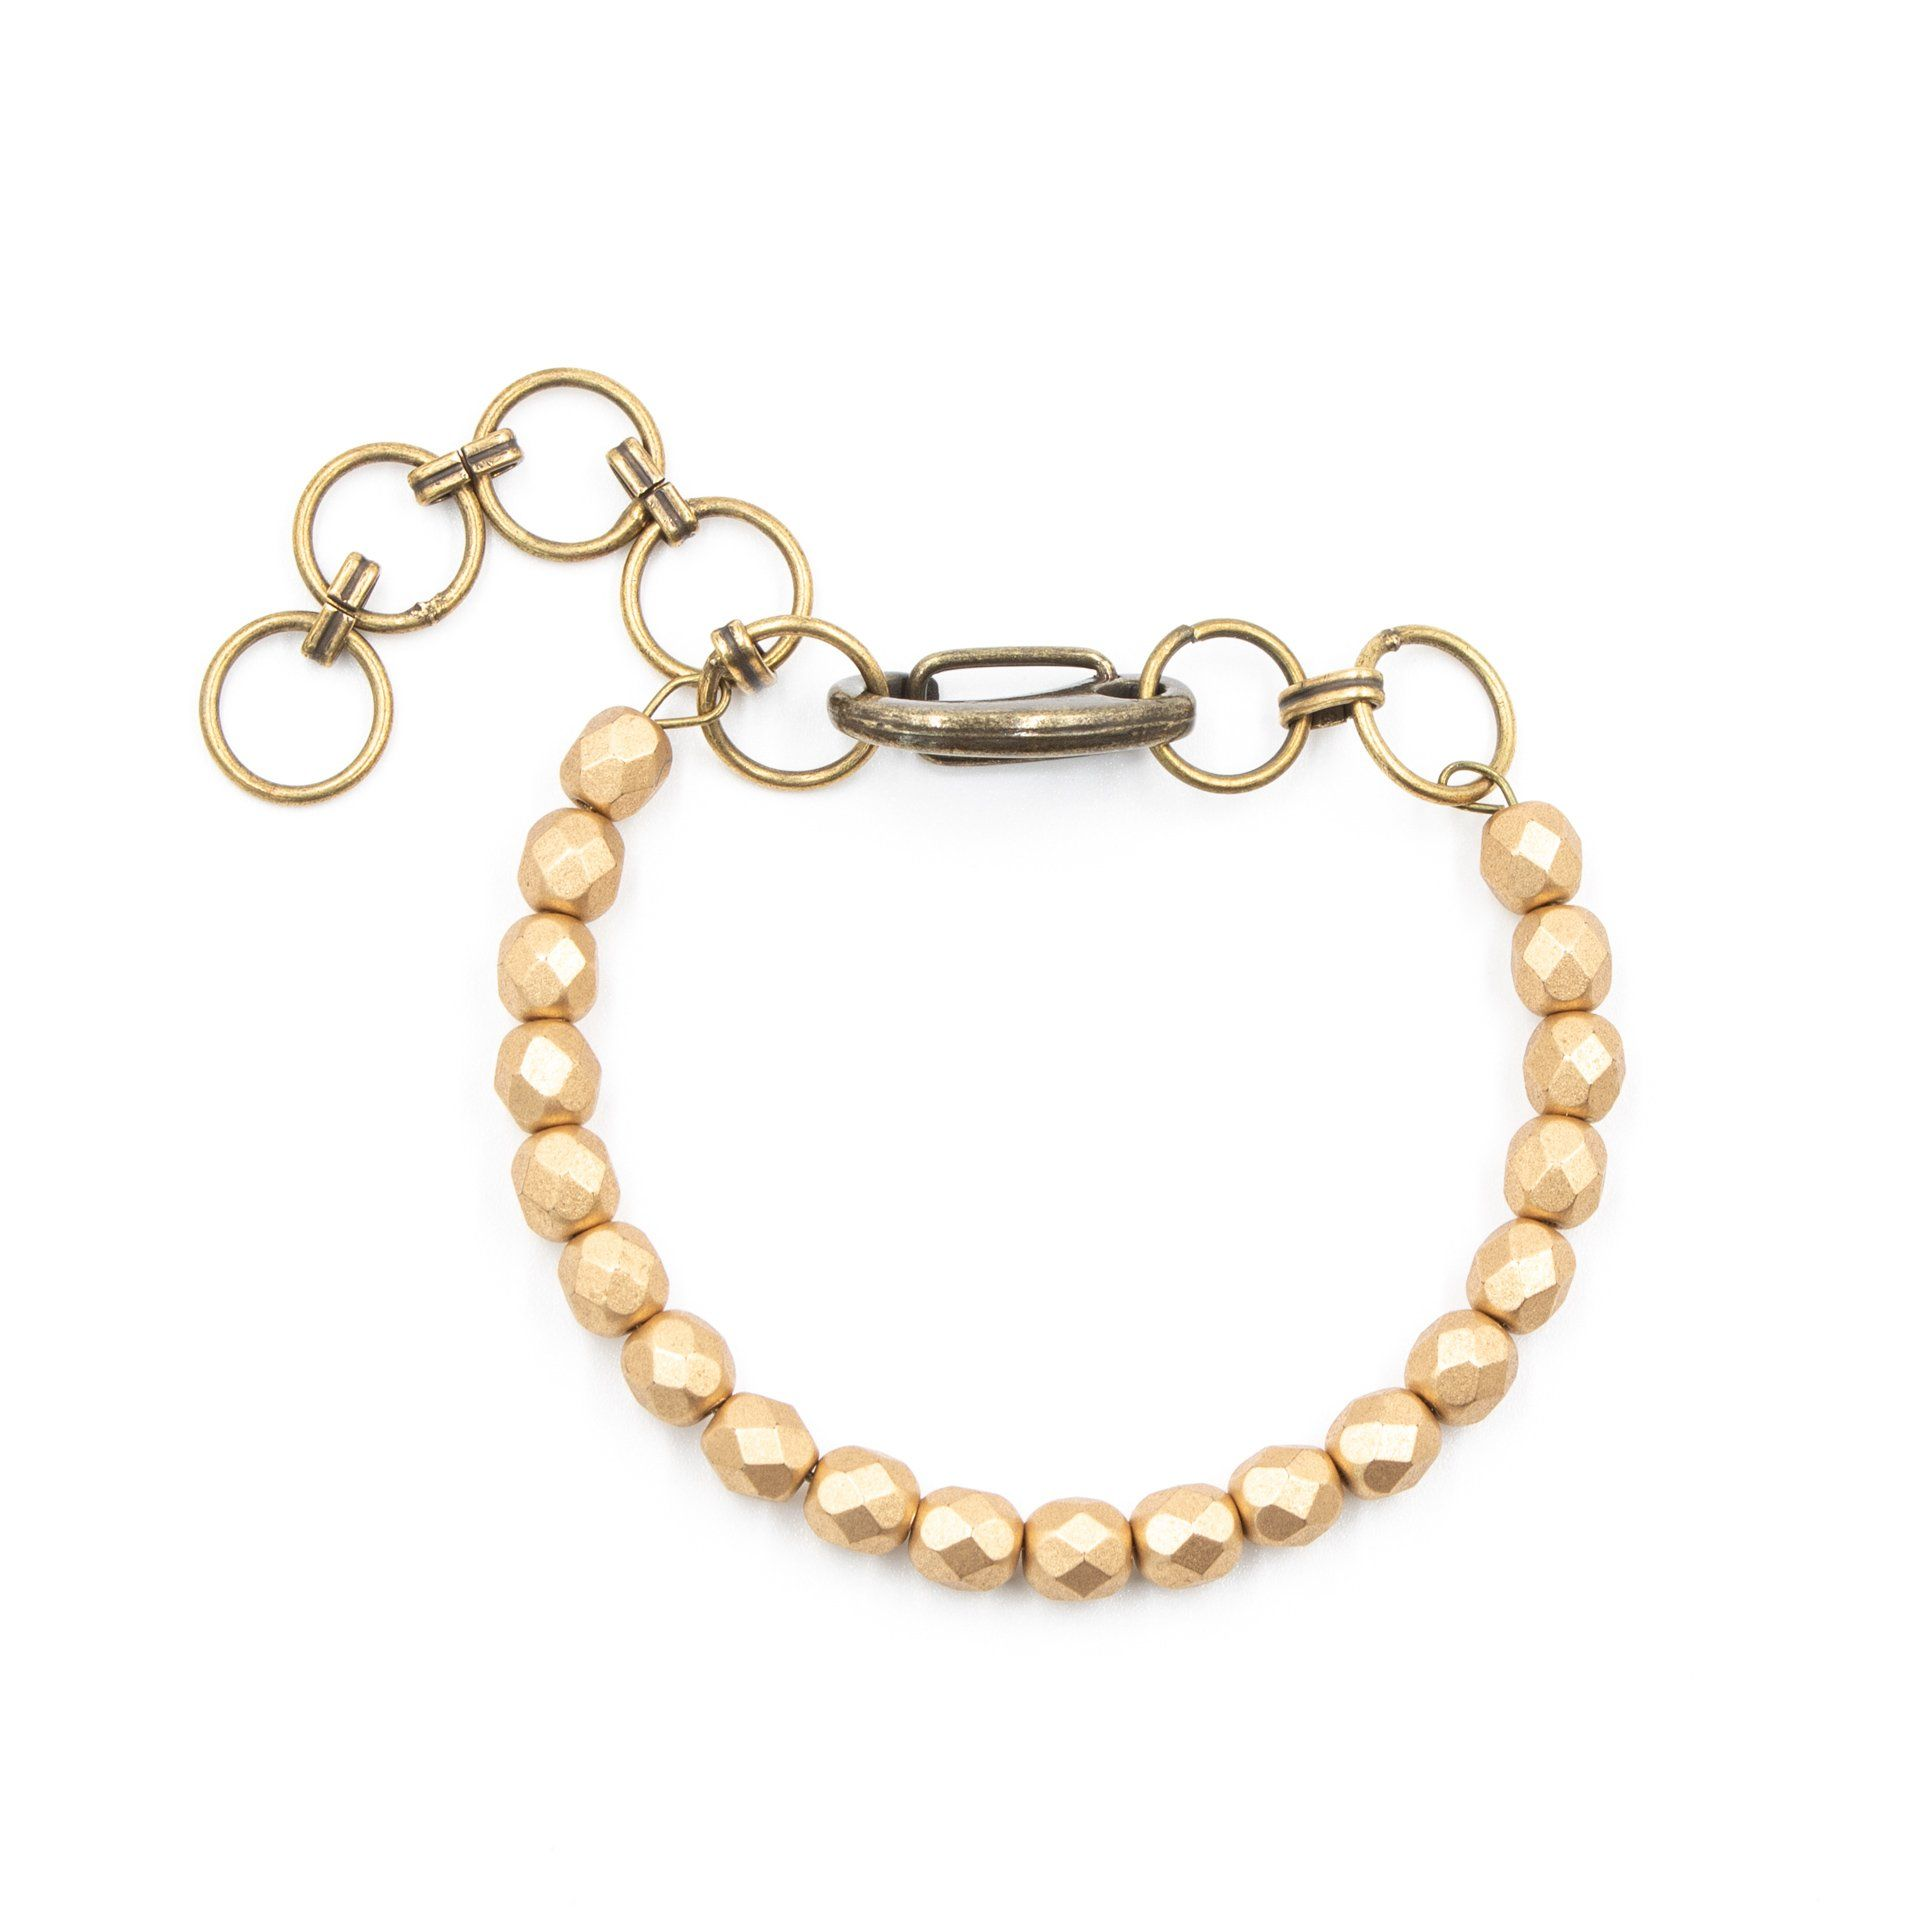 Handmade Adjustable Gold Beaded Bracelet